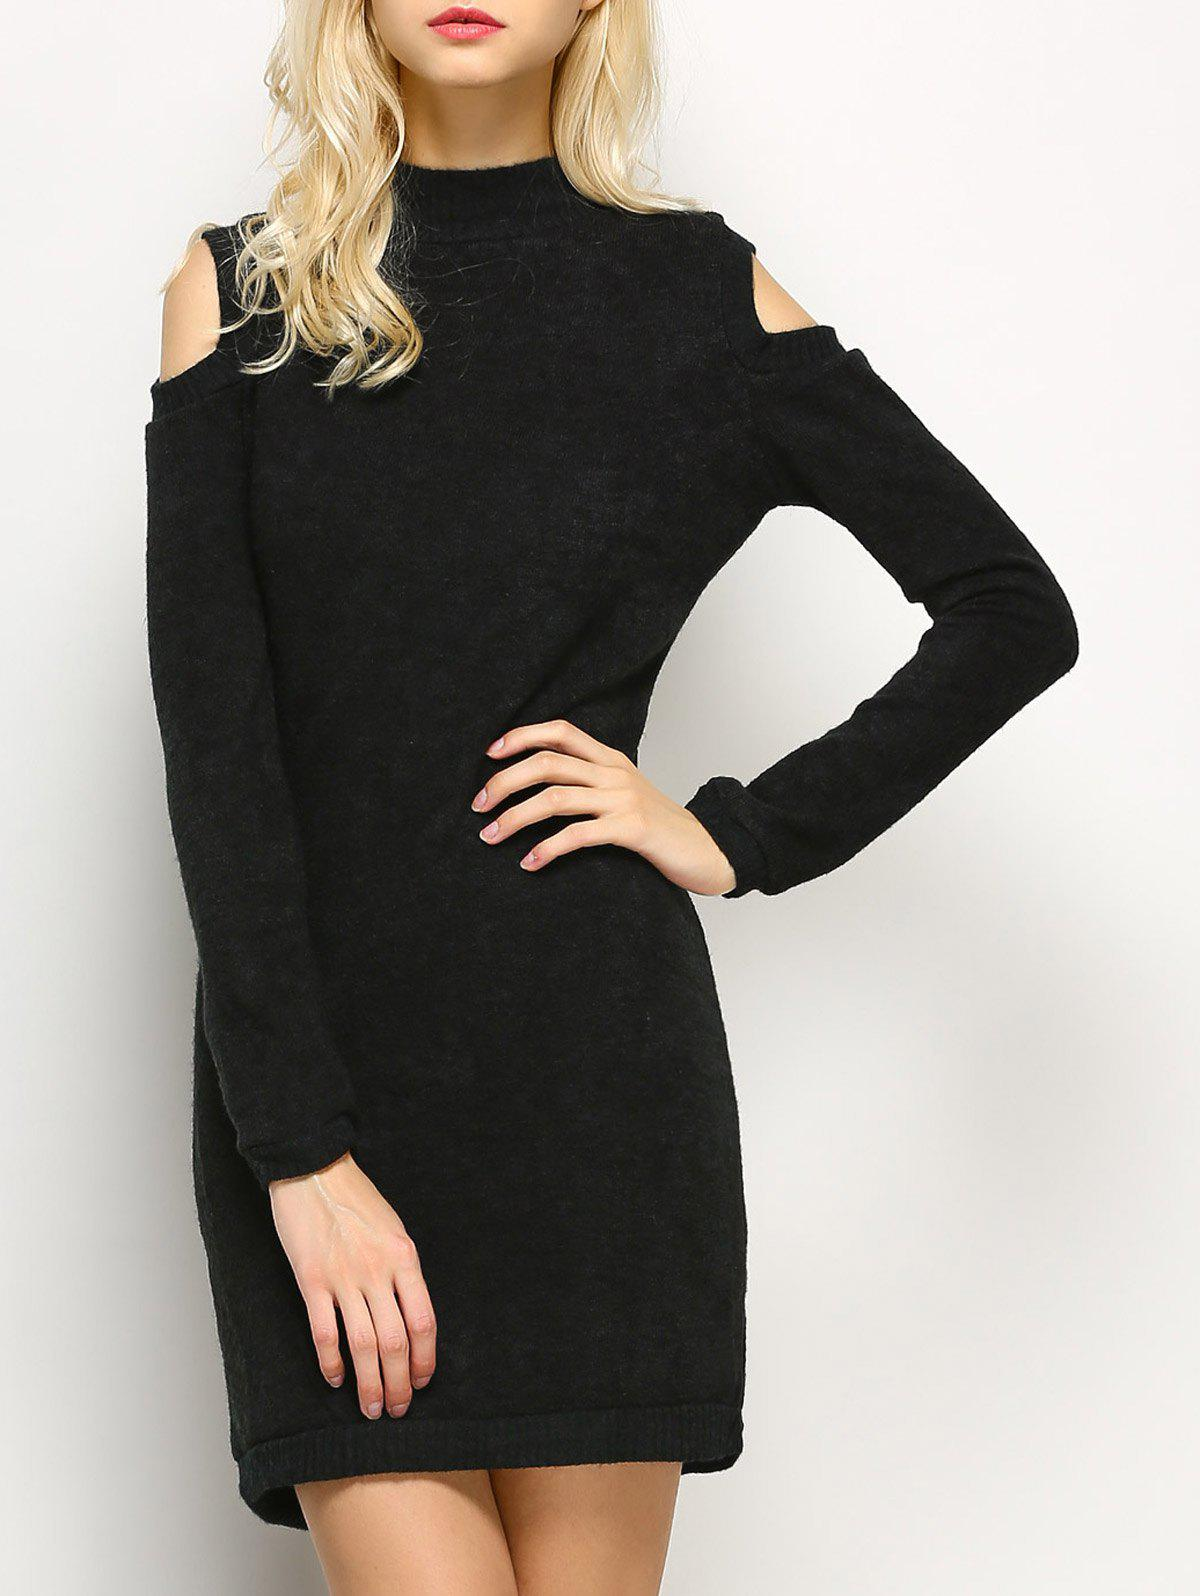 Long Sleeve Cold Shoulder High Neck Bodycon Dress - BLACK M